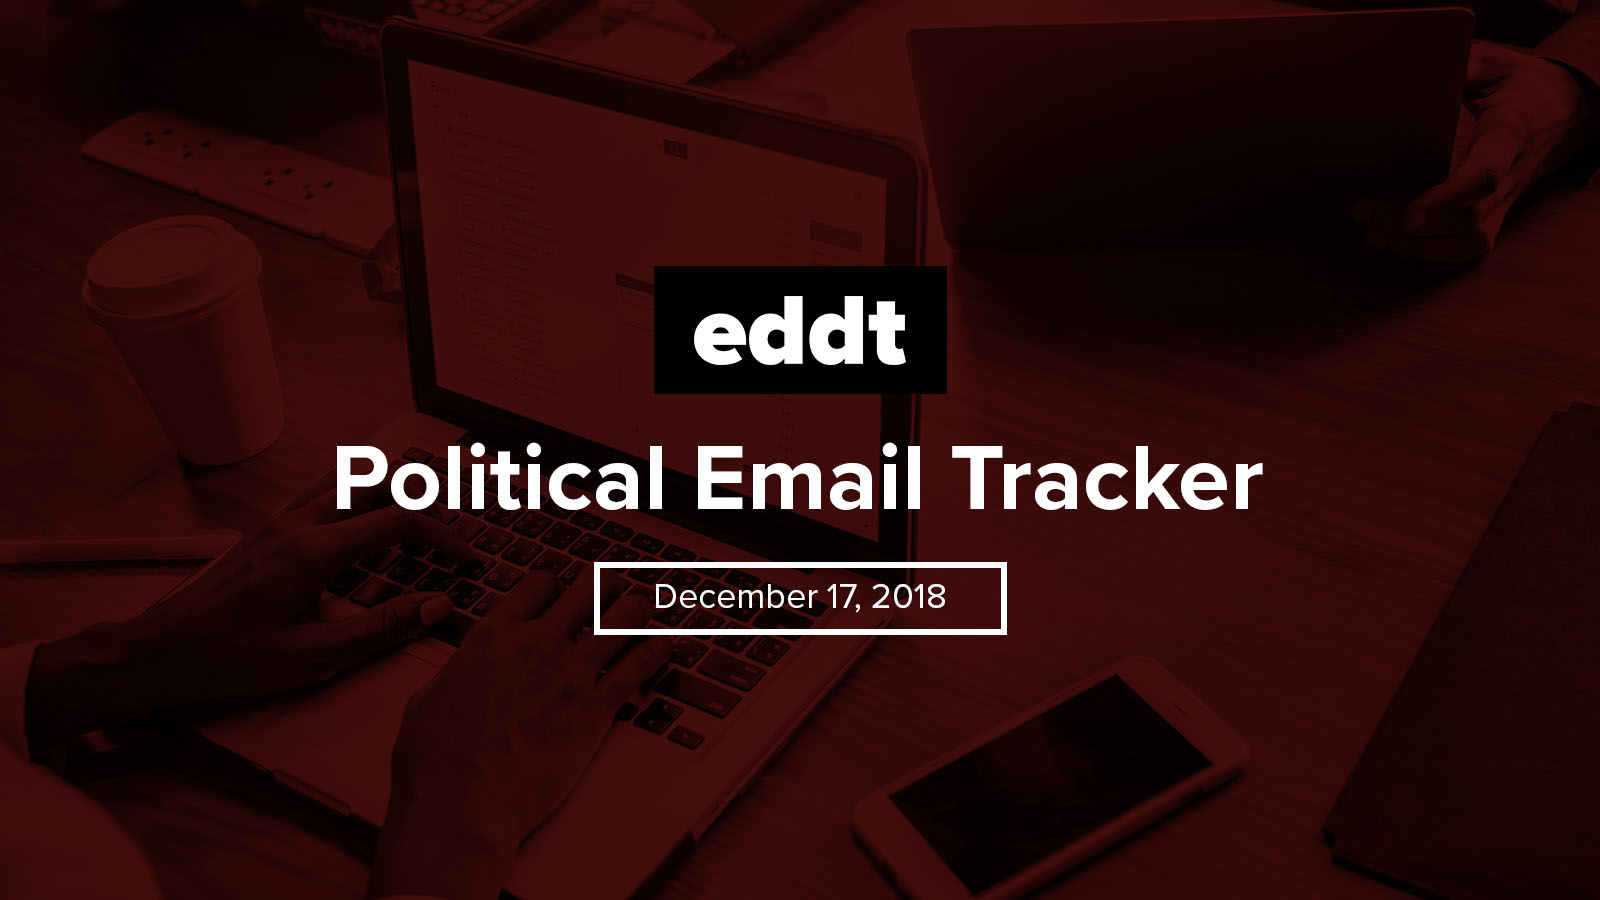 Political Email Tracker - December 17, 2018